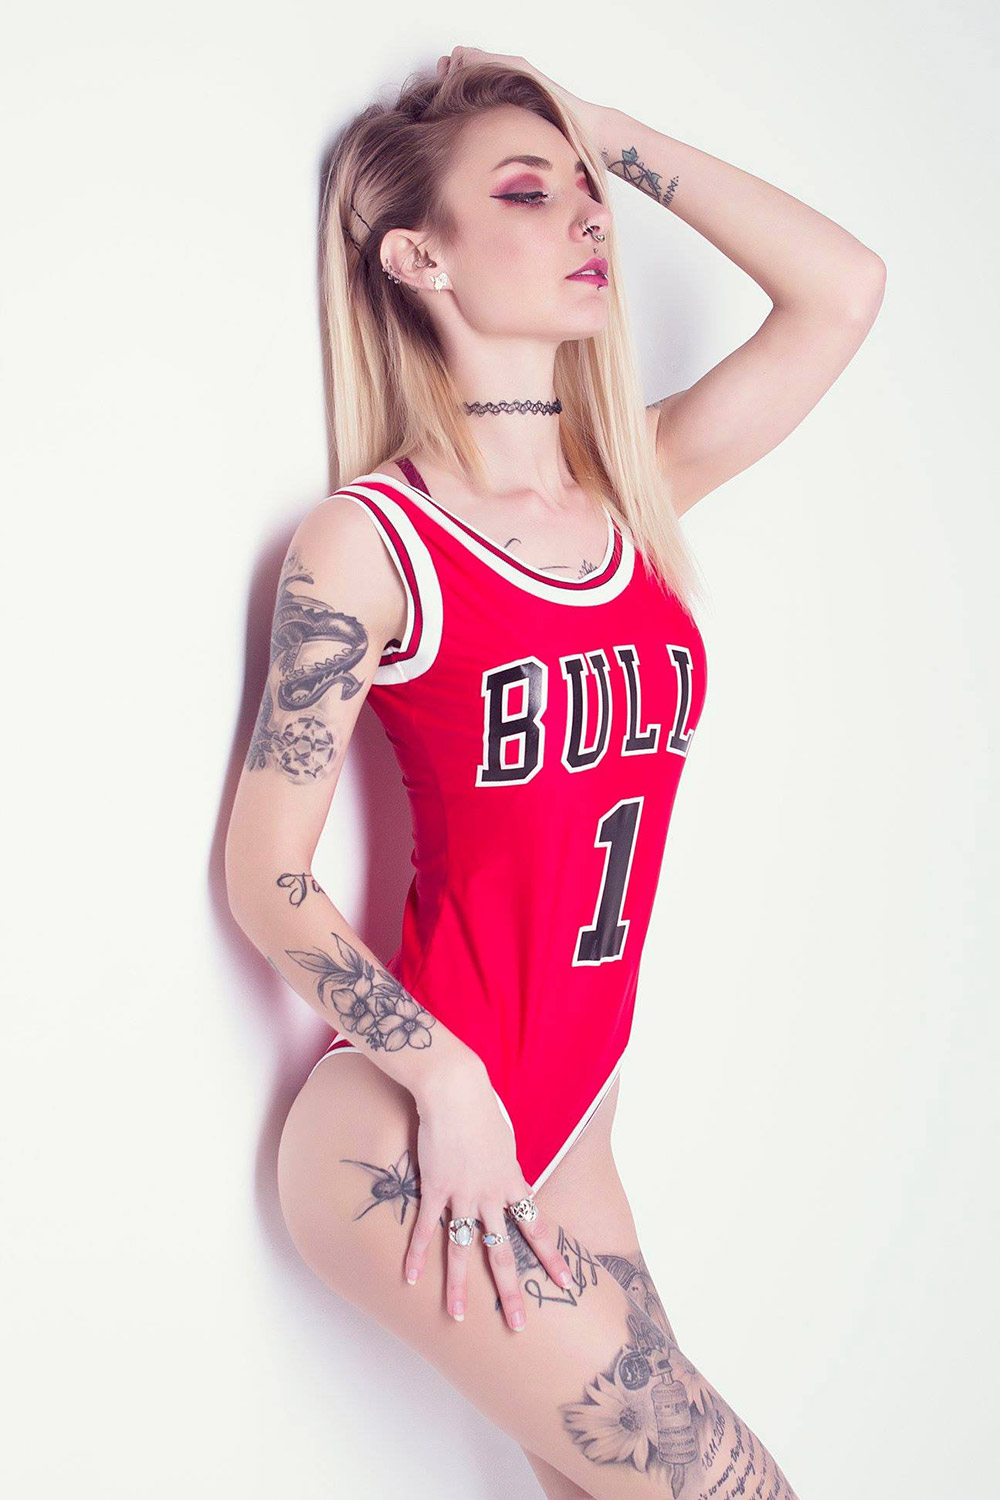 vixxen-tattooed-alt-model-11